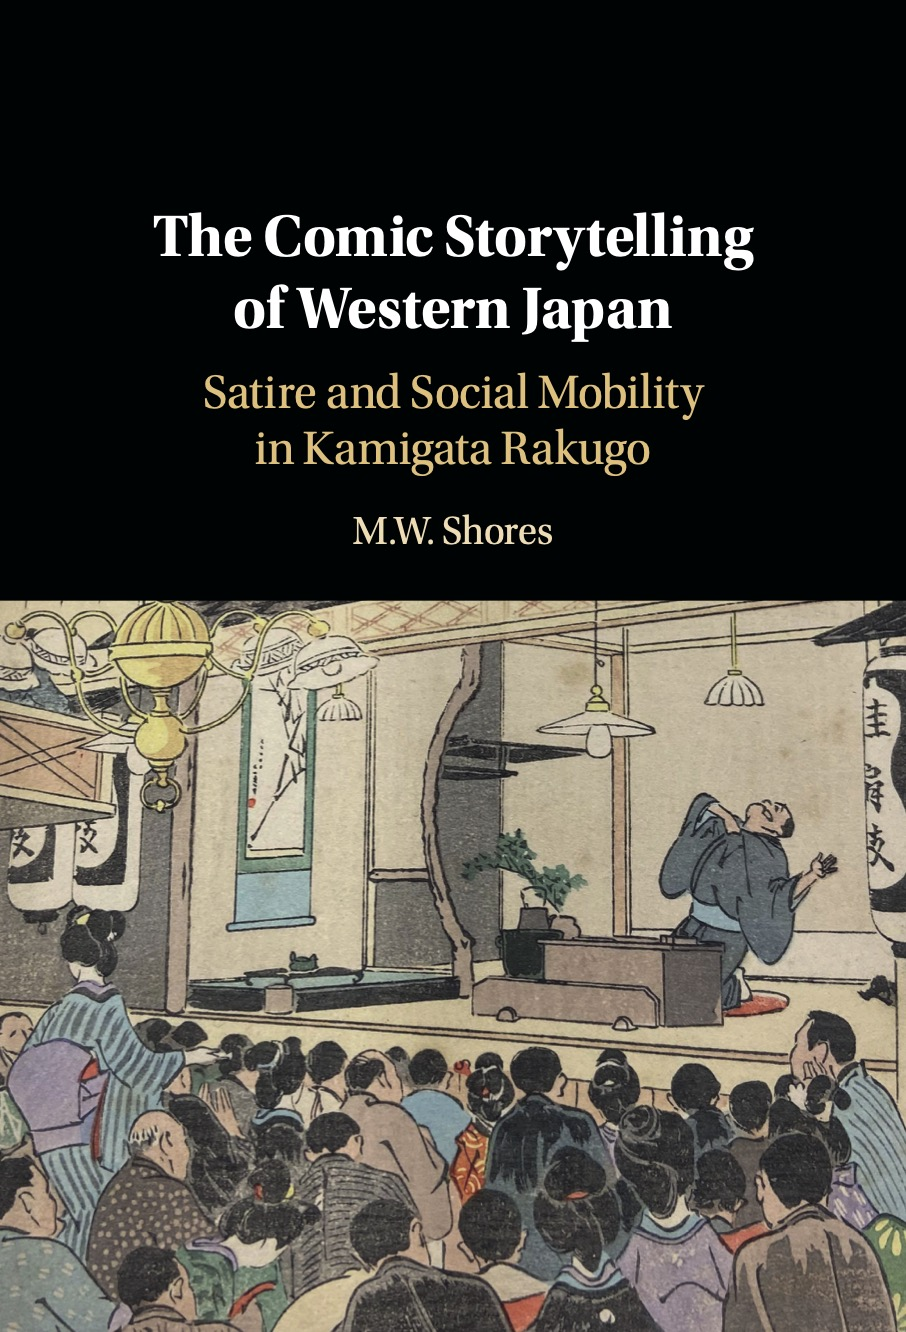 Cover image and link to purchase The Comic Storytelling of Western Japan: Satire and Social Mobility in Kamigata Rakugo